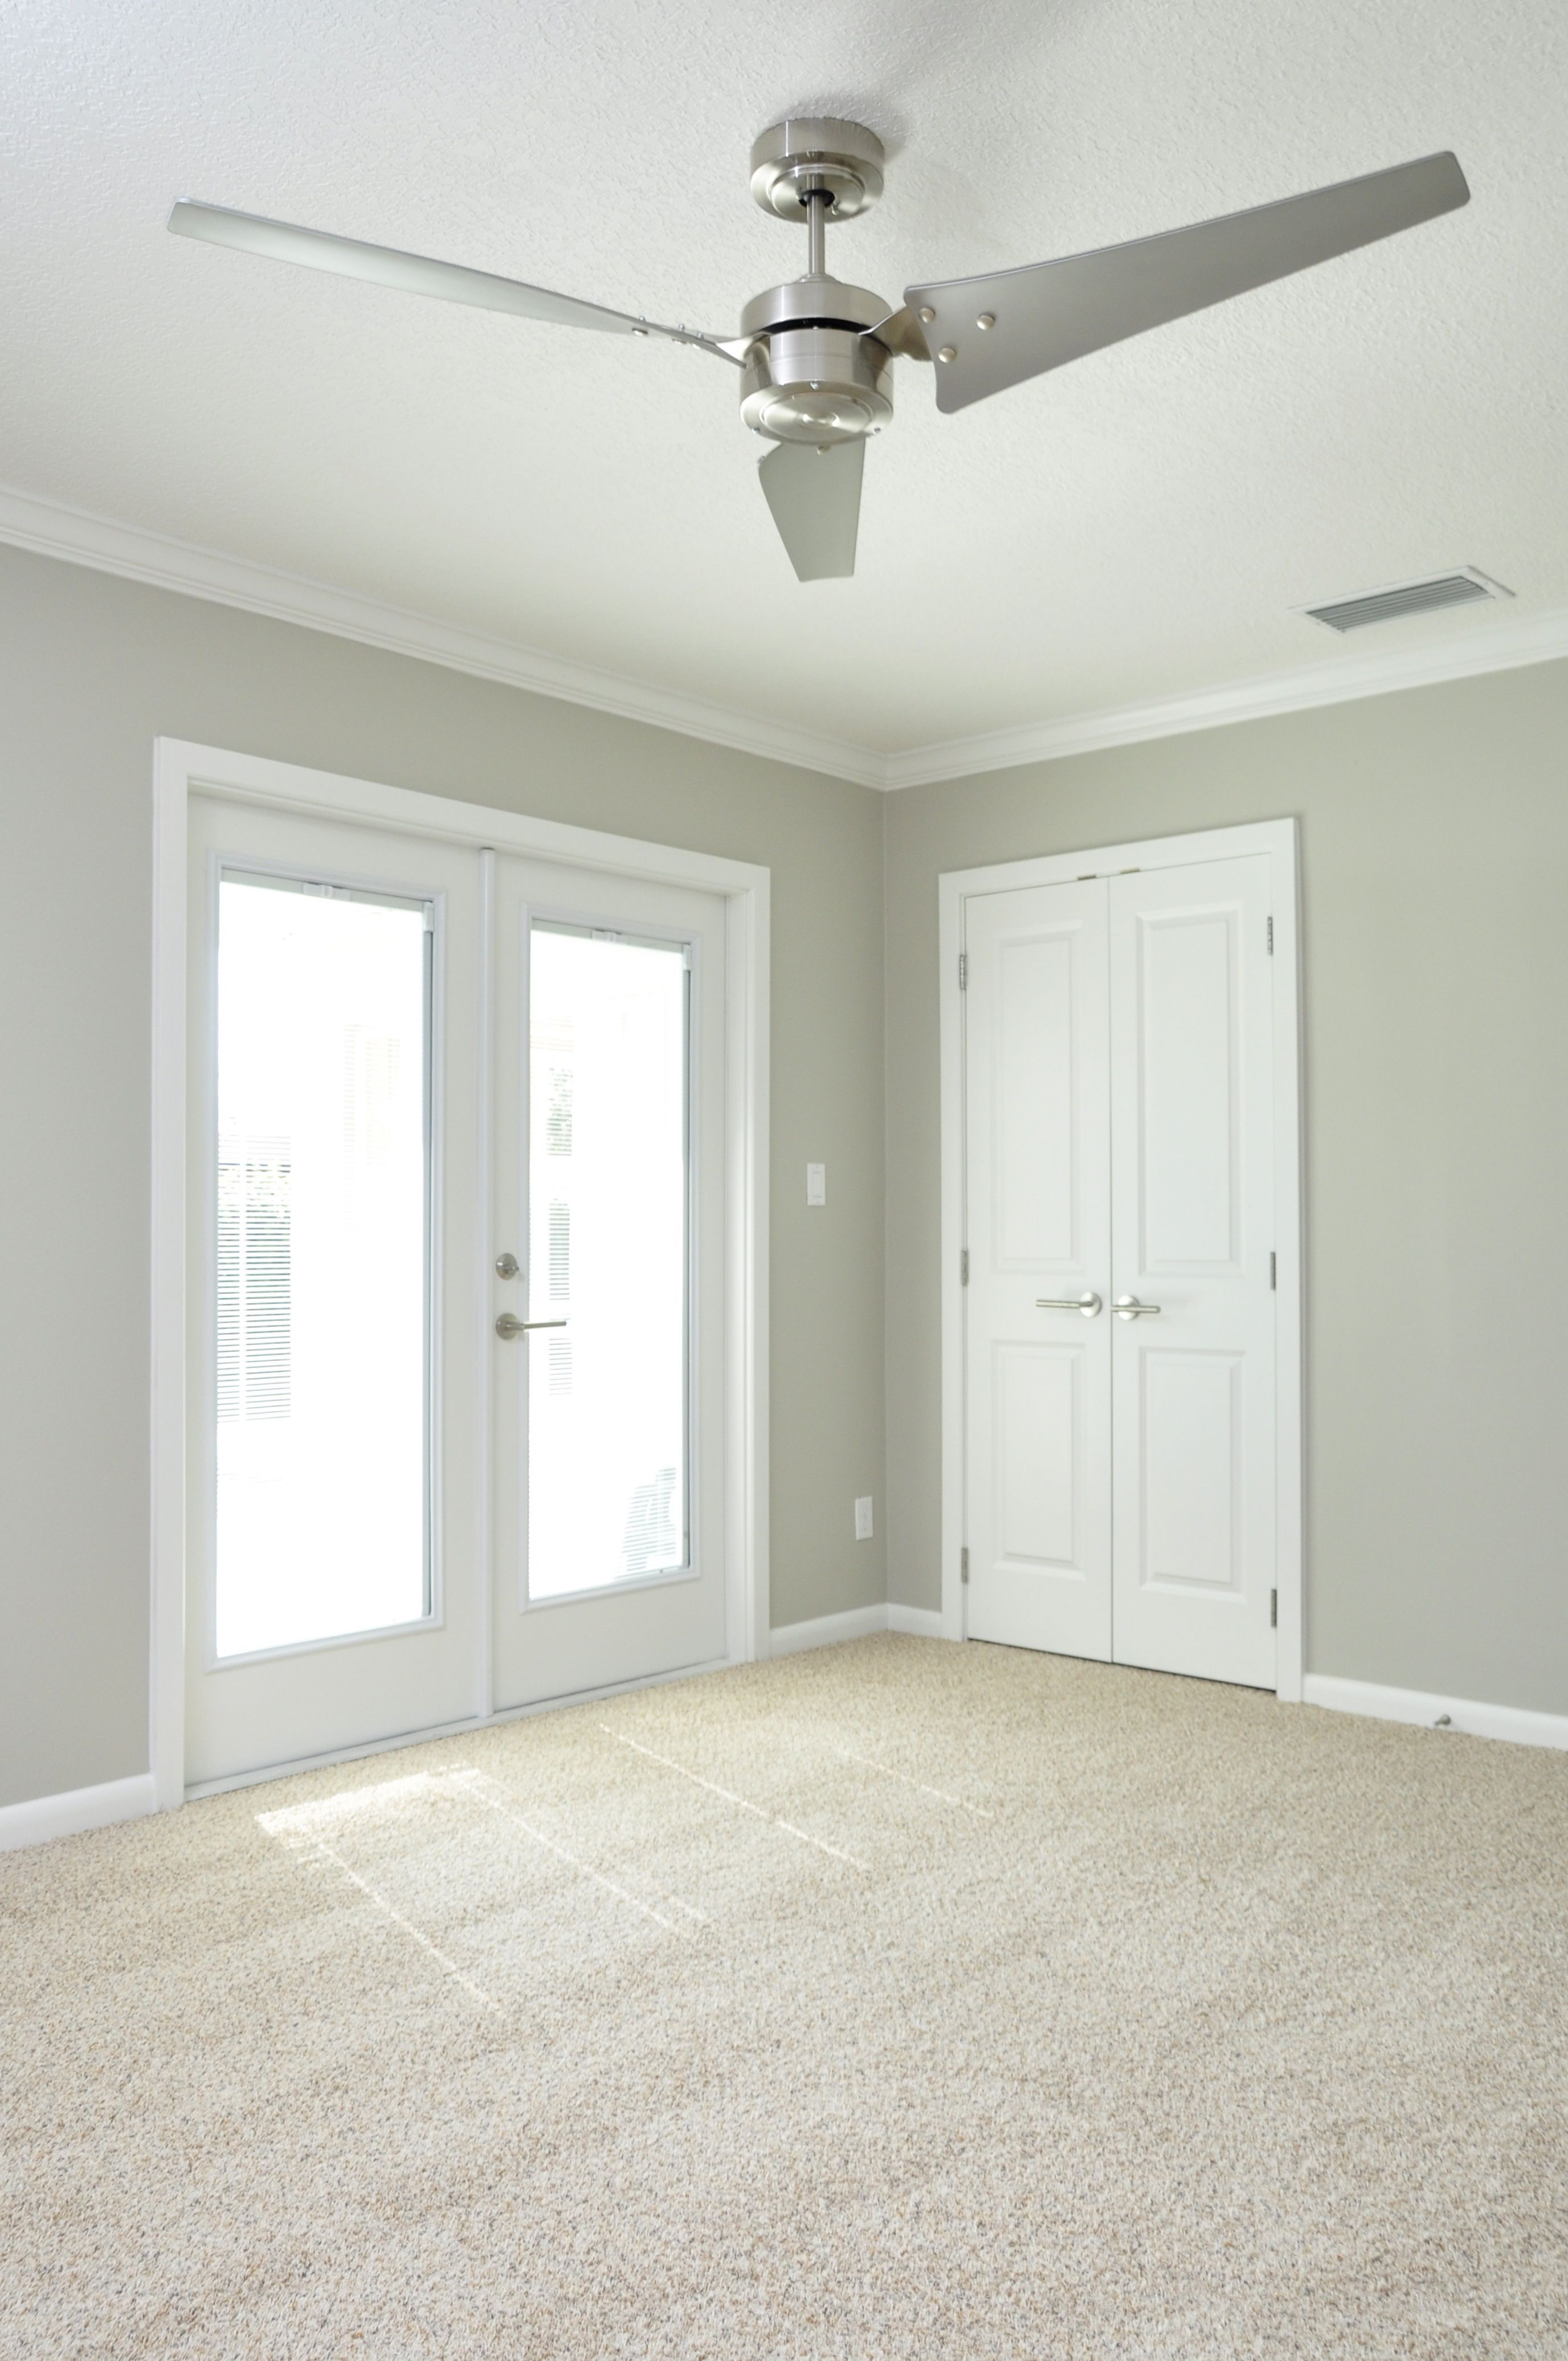 Neutral Shimmery Gray Walls With Clean White Trim Double French regarding dimensions 2752 X 4143